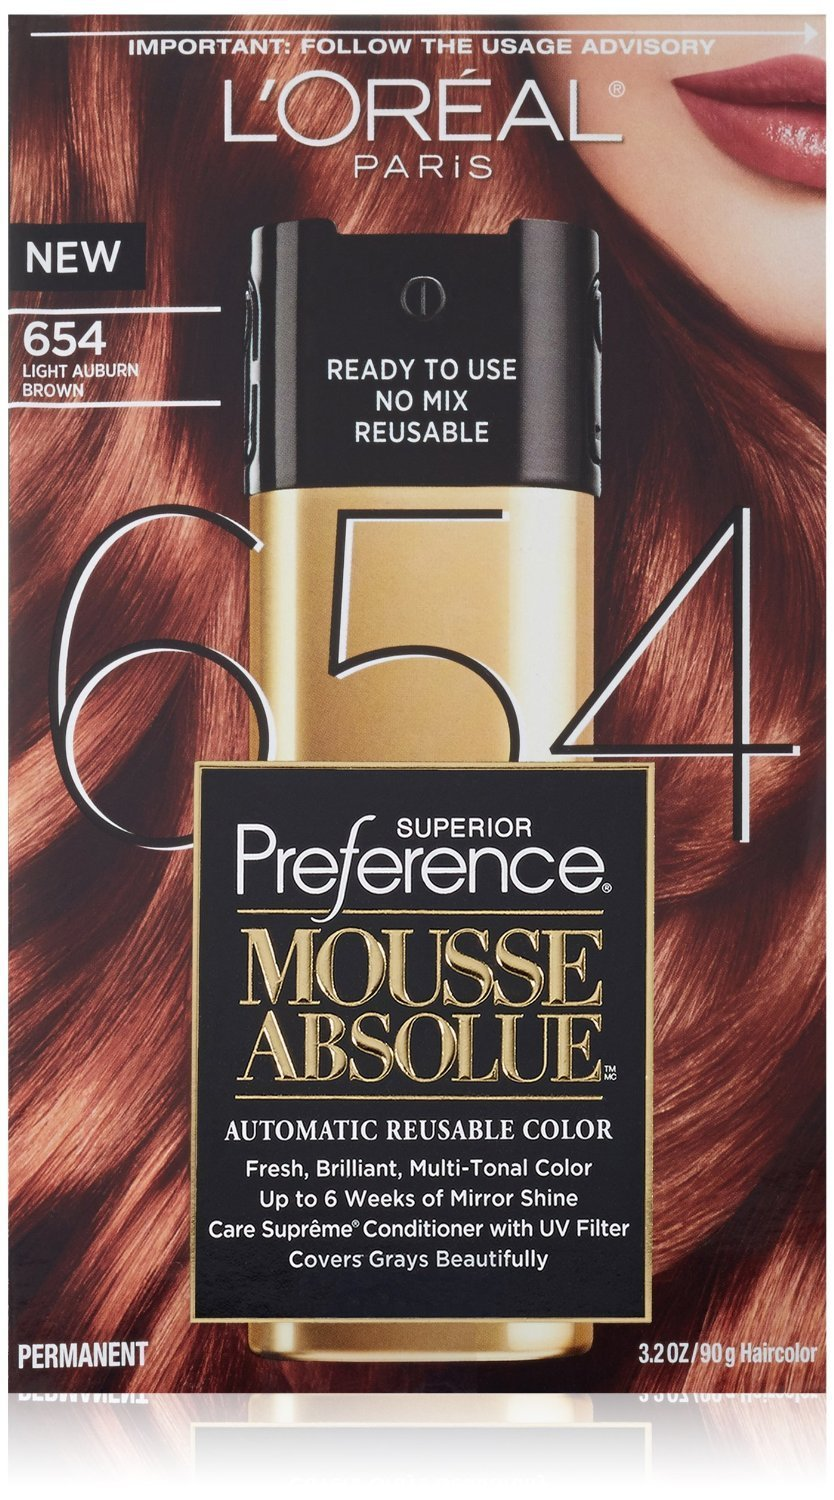 L'Oreal Paris Superior Preference Mousse Absolue Automatic Reusable Color, Light Auburn Brown [654] 3.2 oz (Pack of 2)